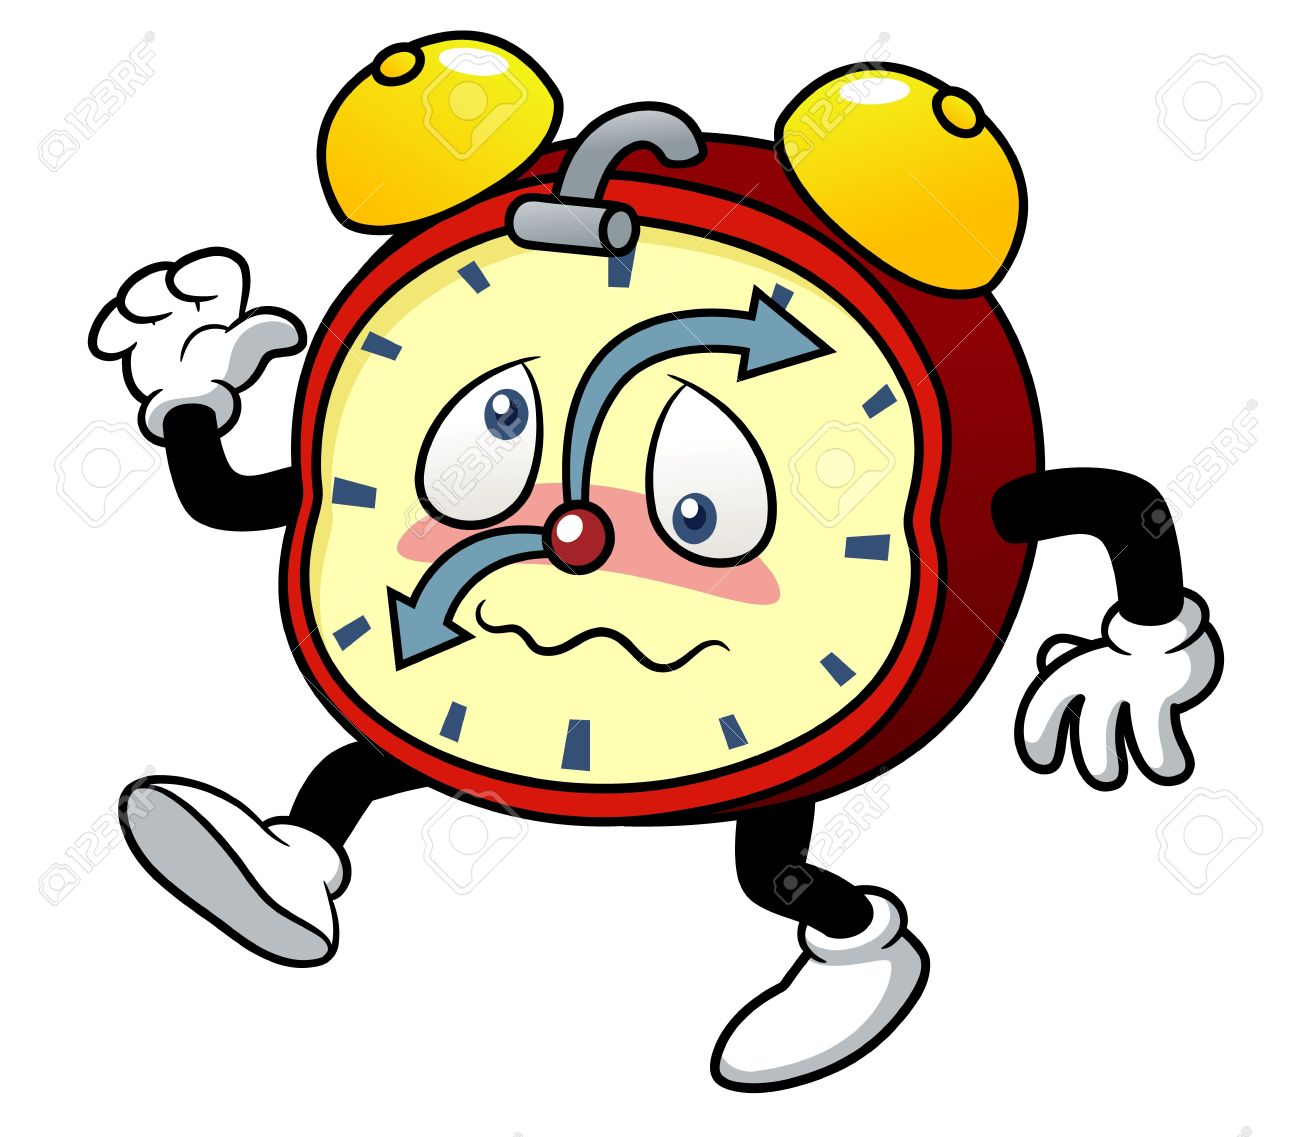 Image result for cartoon clock